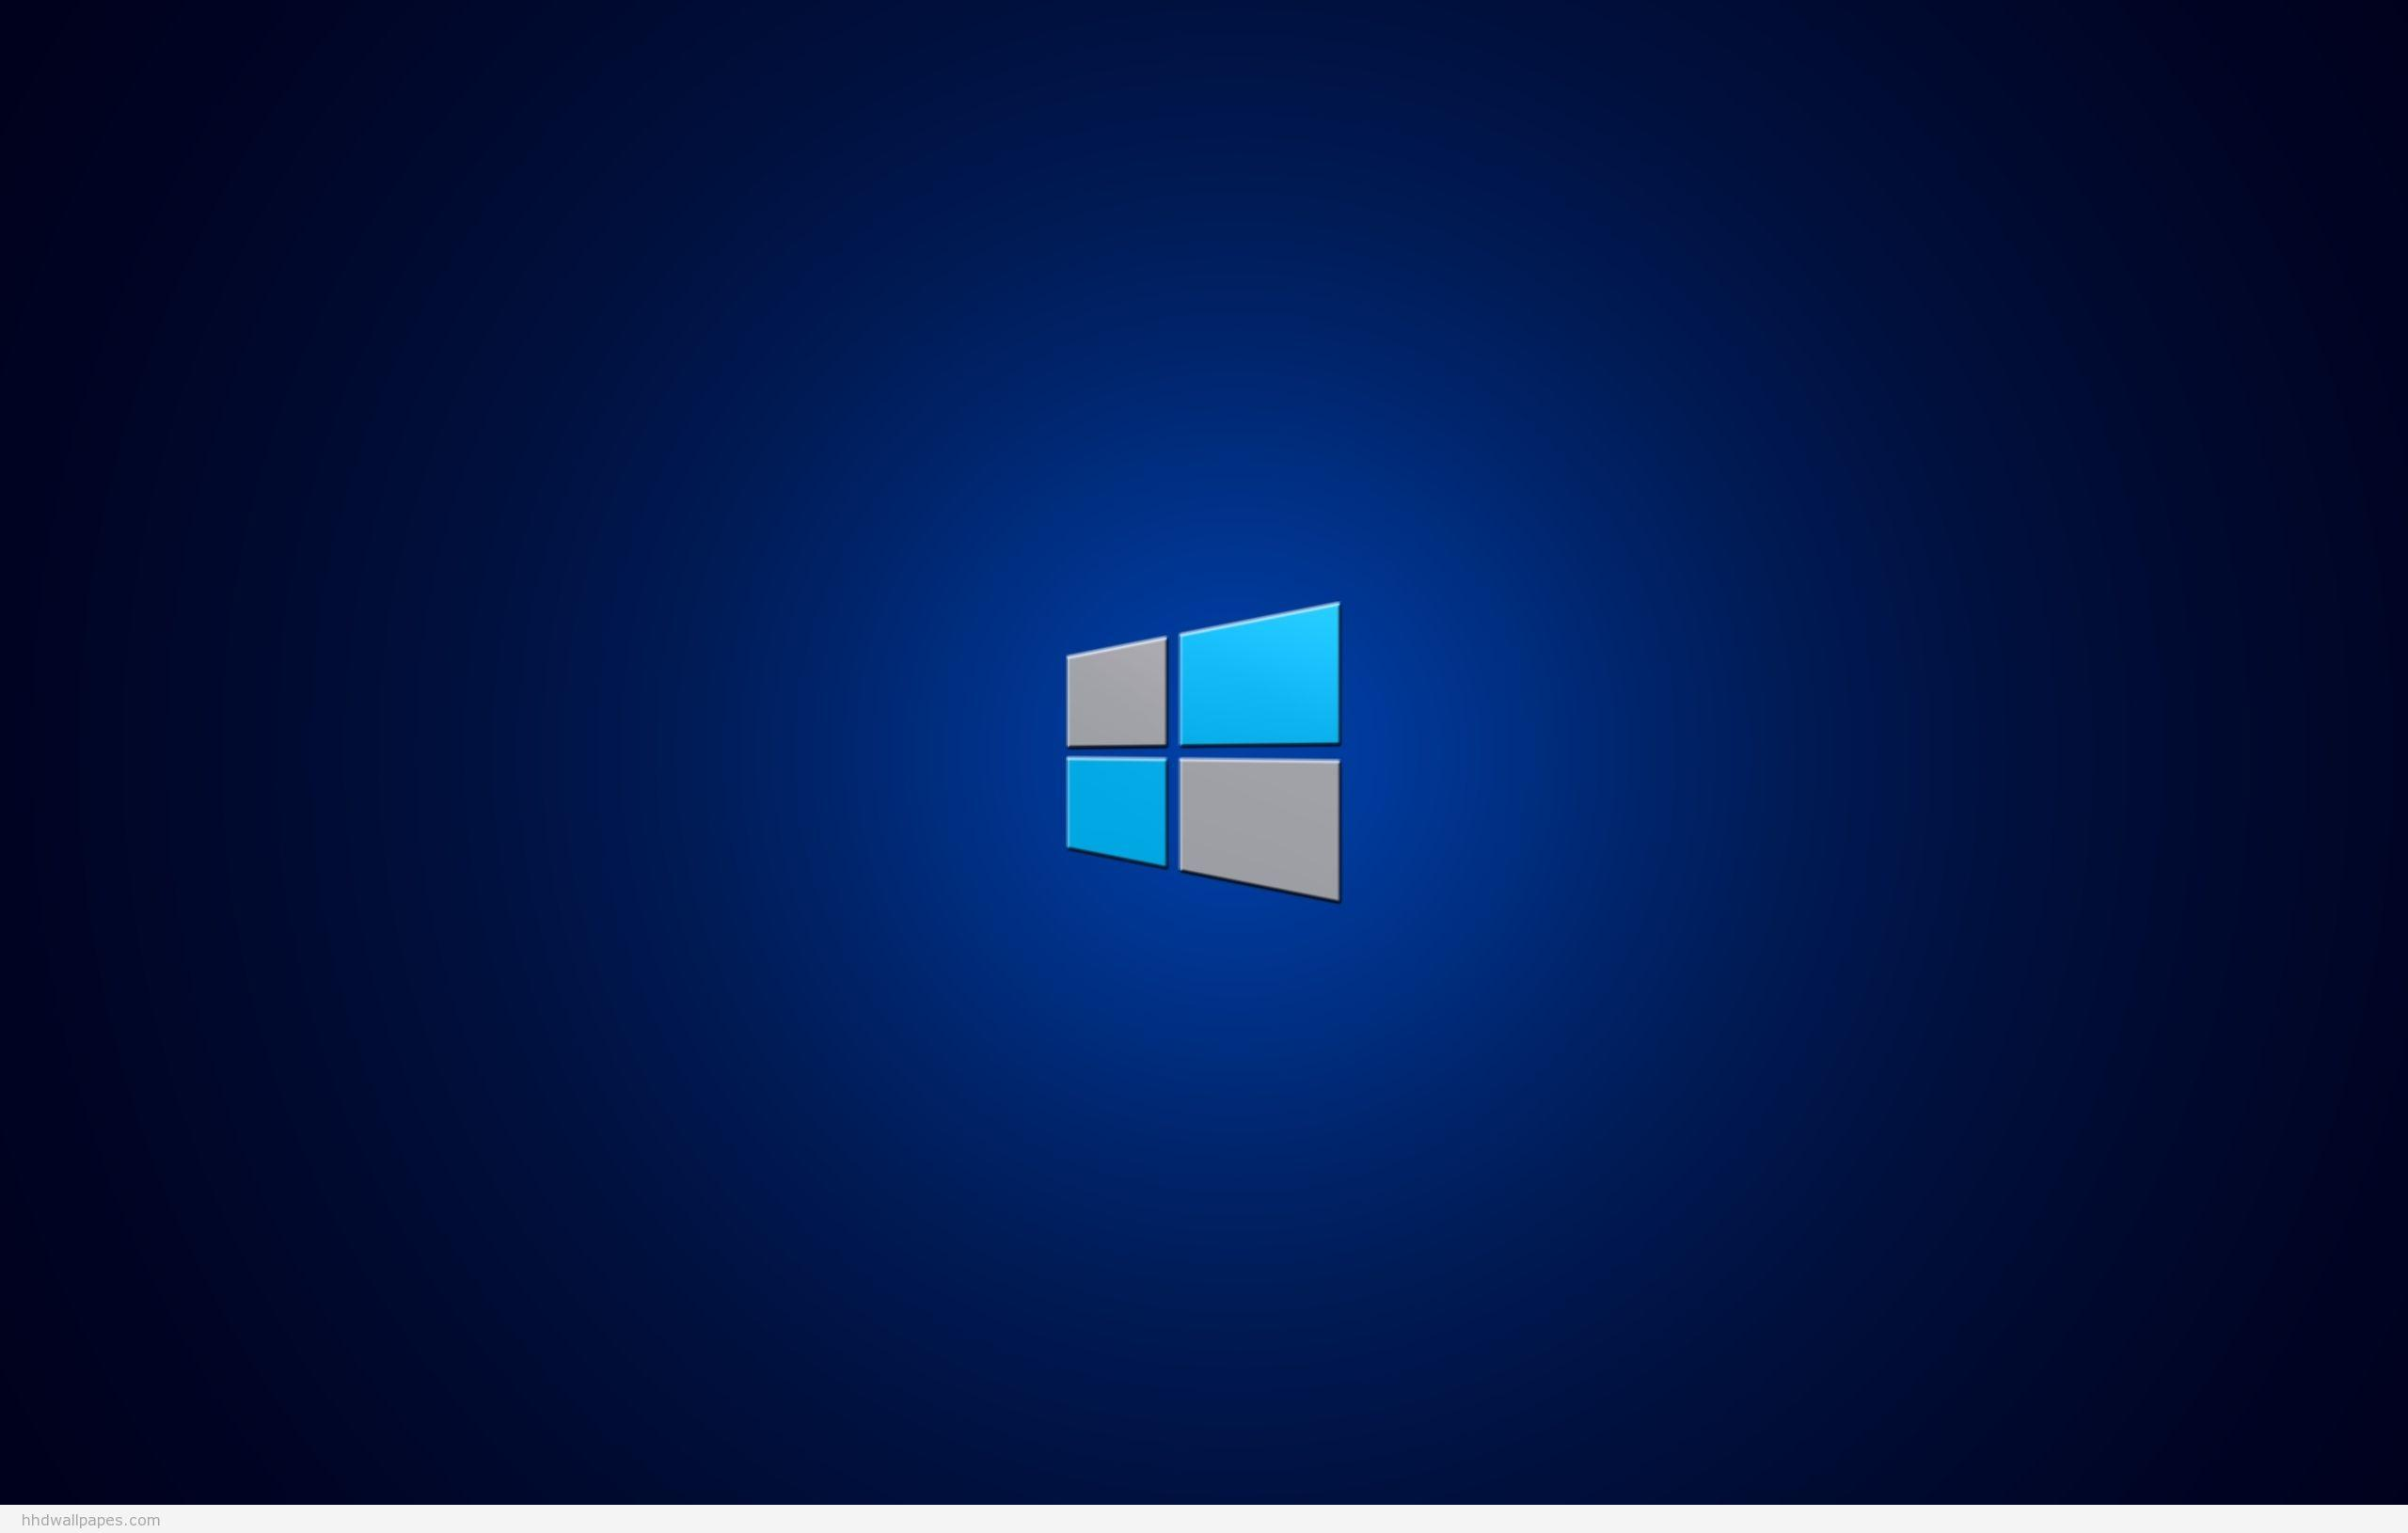 Windows 8 wallpapers high quality wallpaper cave for High quality windows